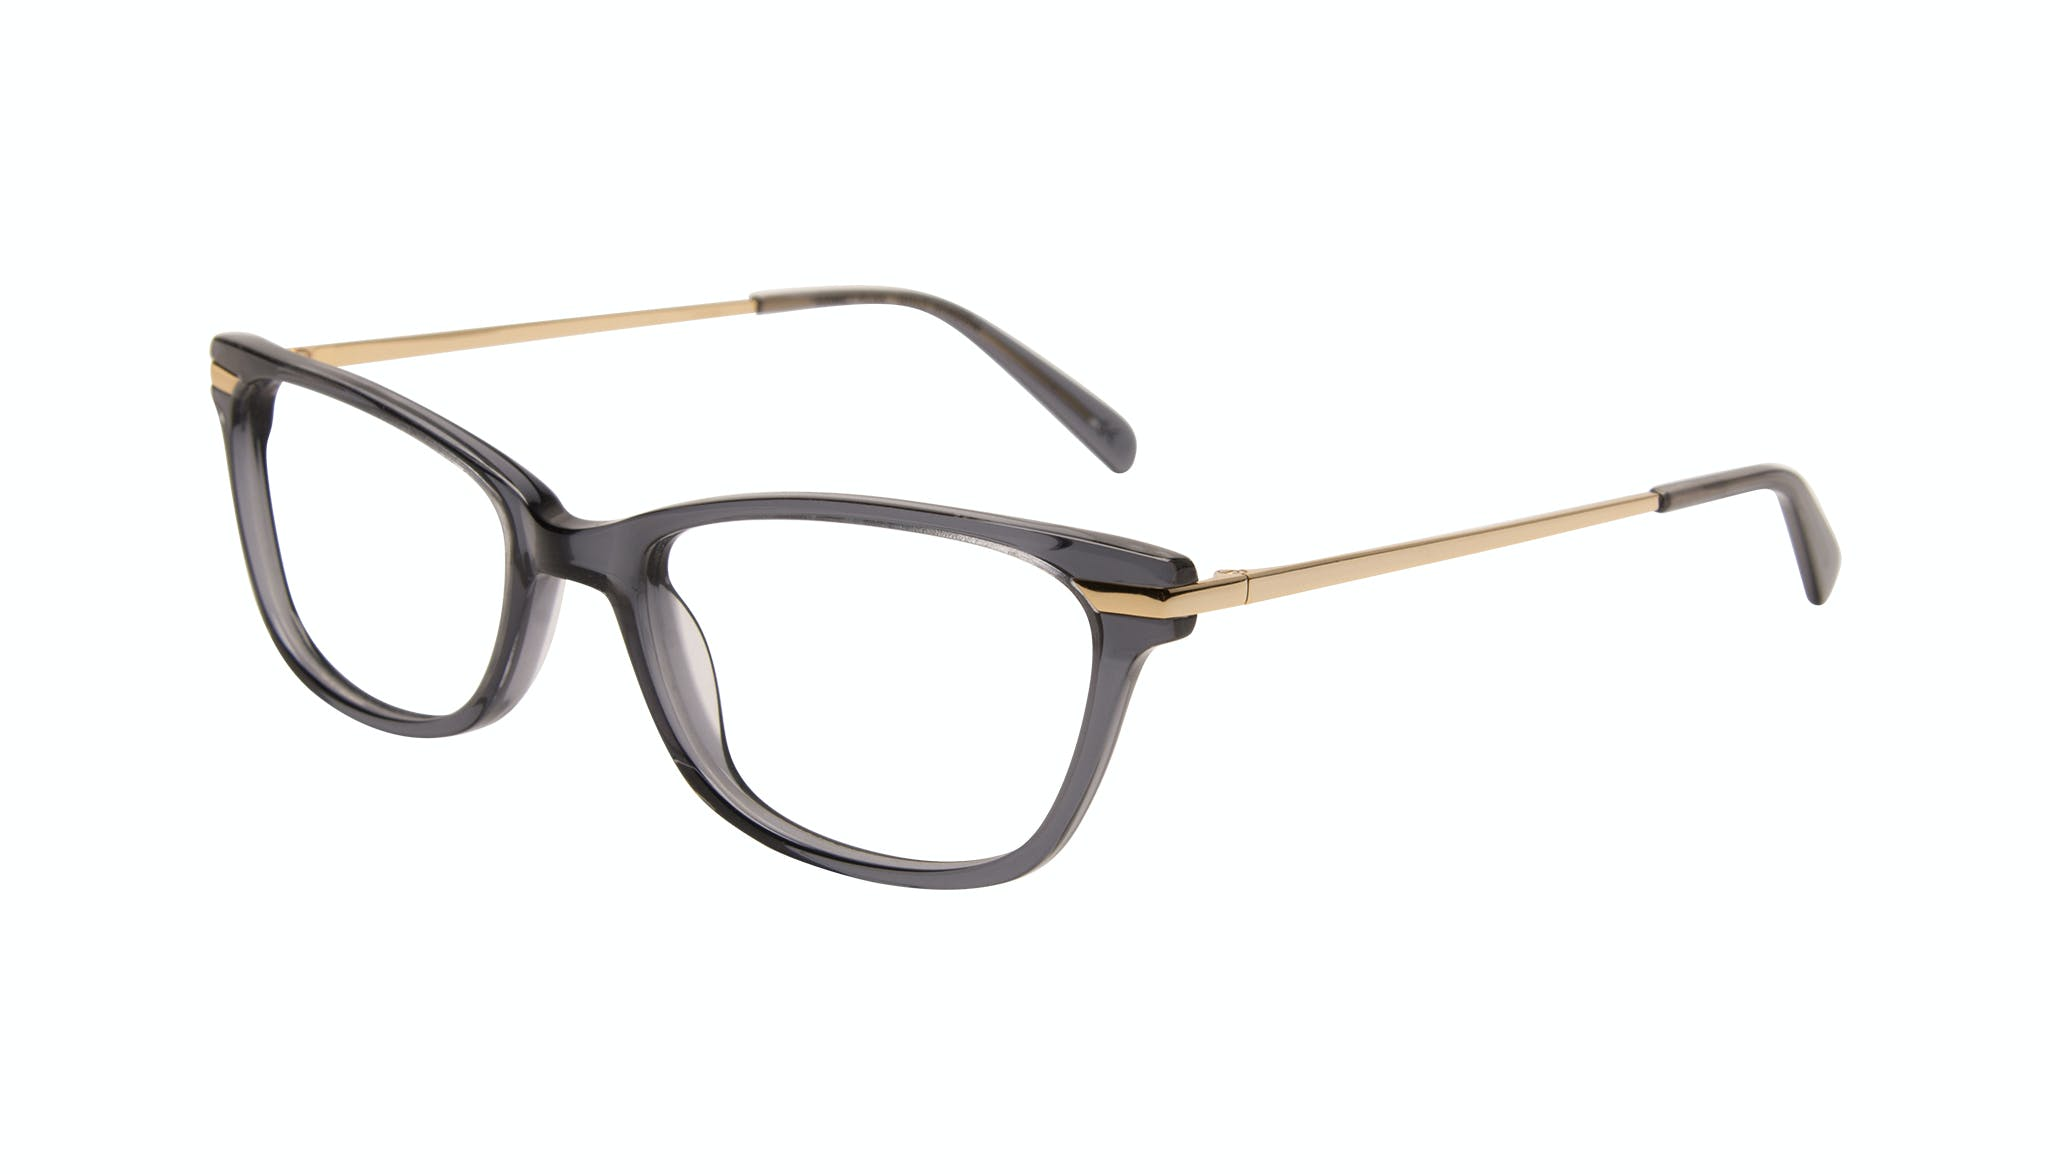 Affordable Fashion Glasses Rectangle Eyeglasses Women Comet Plus Gold Shadow Tilt